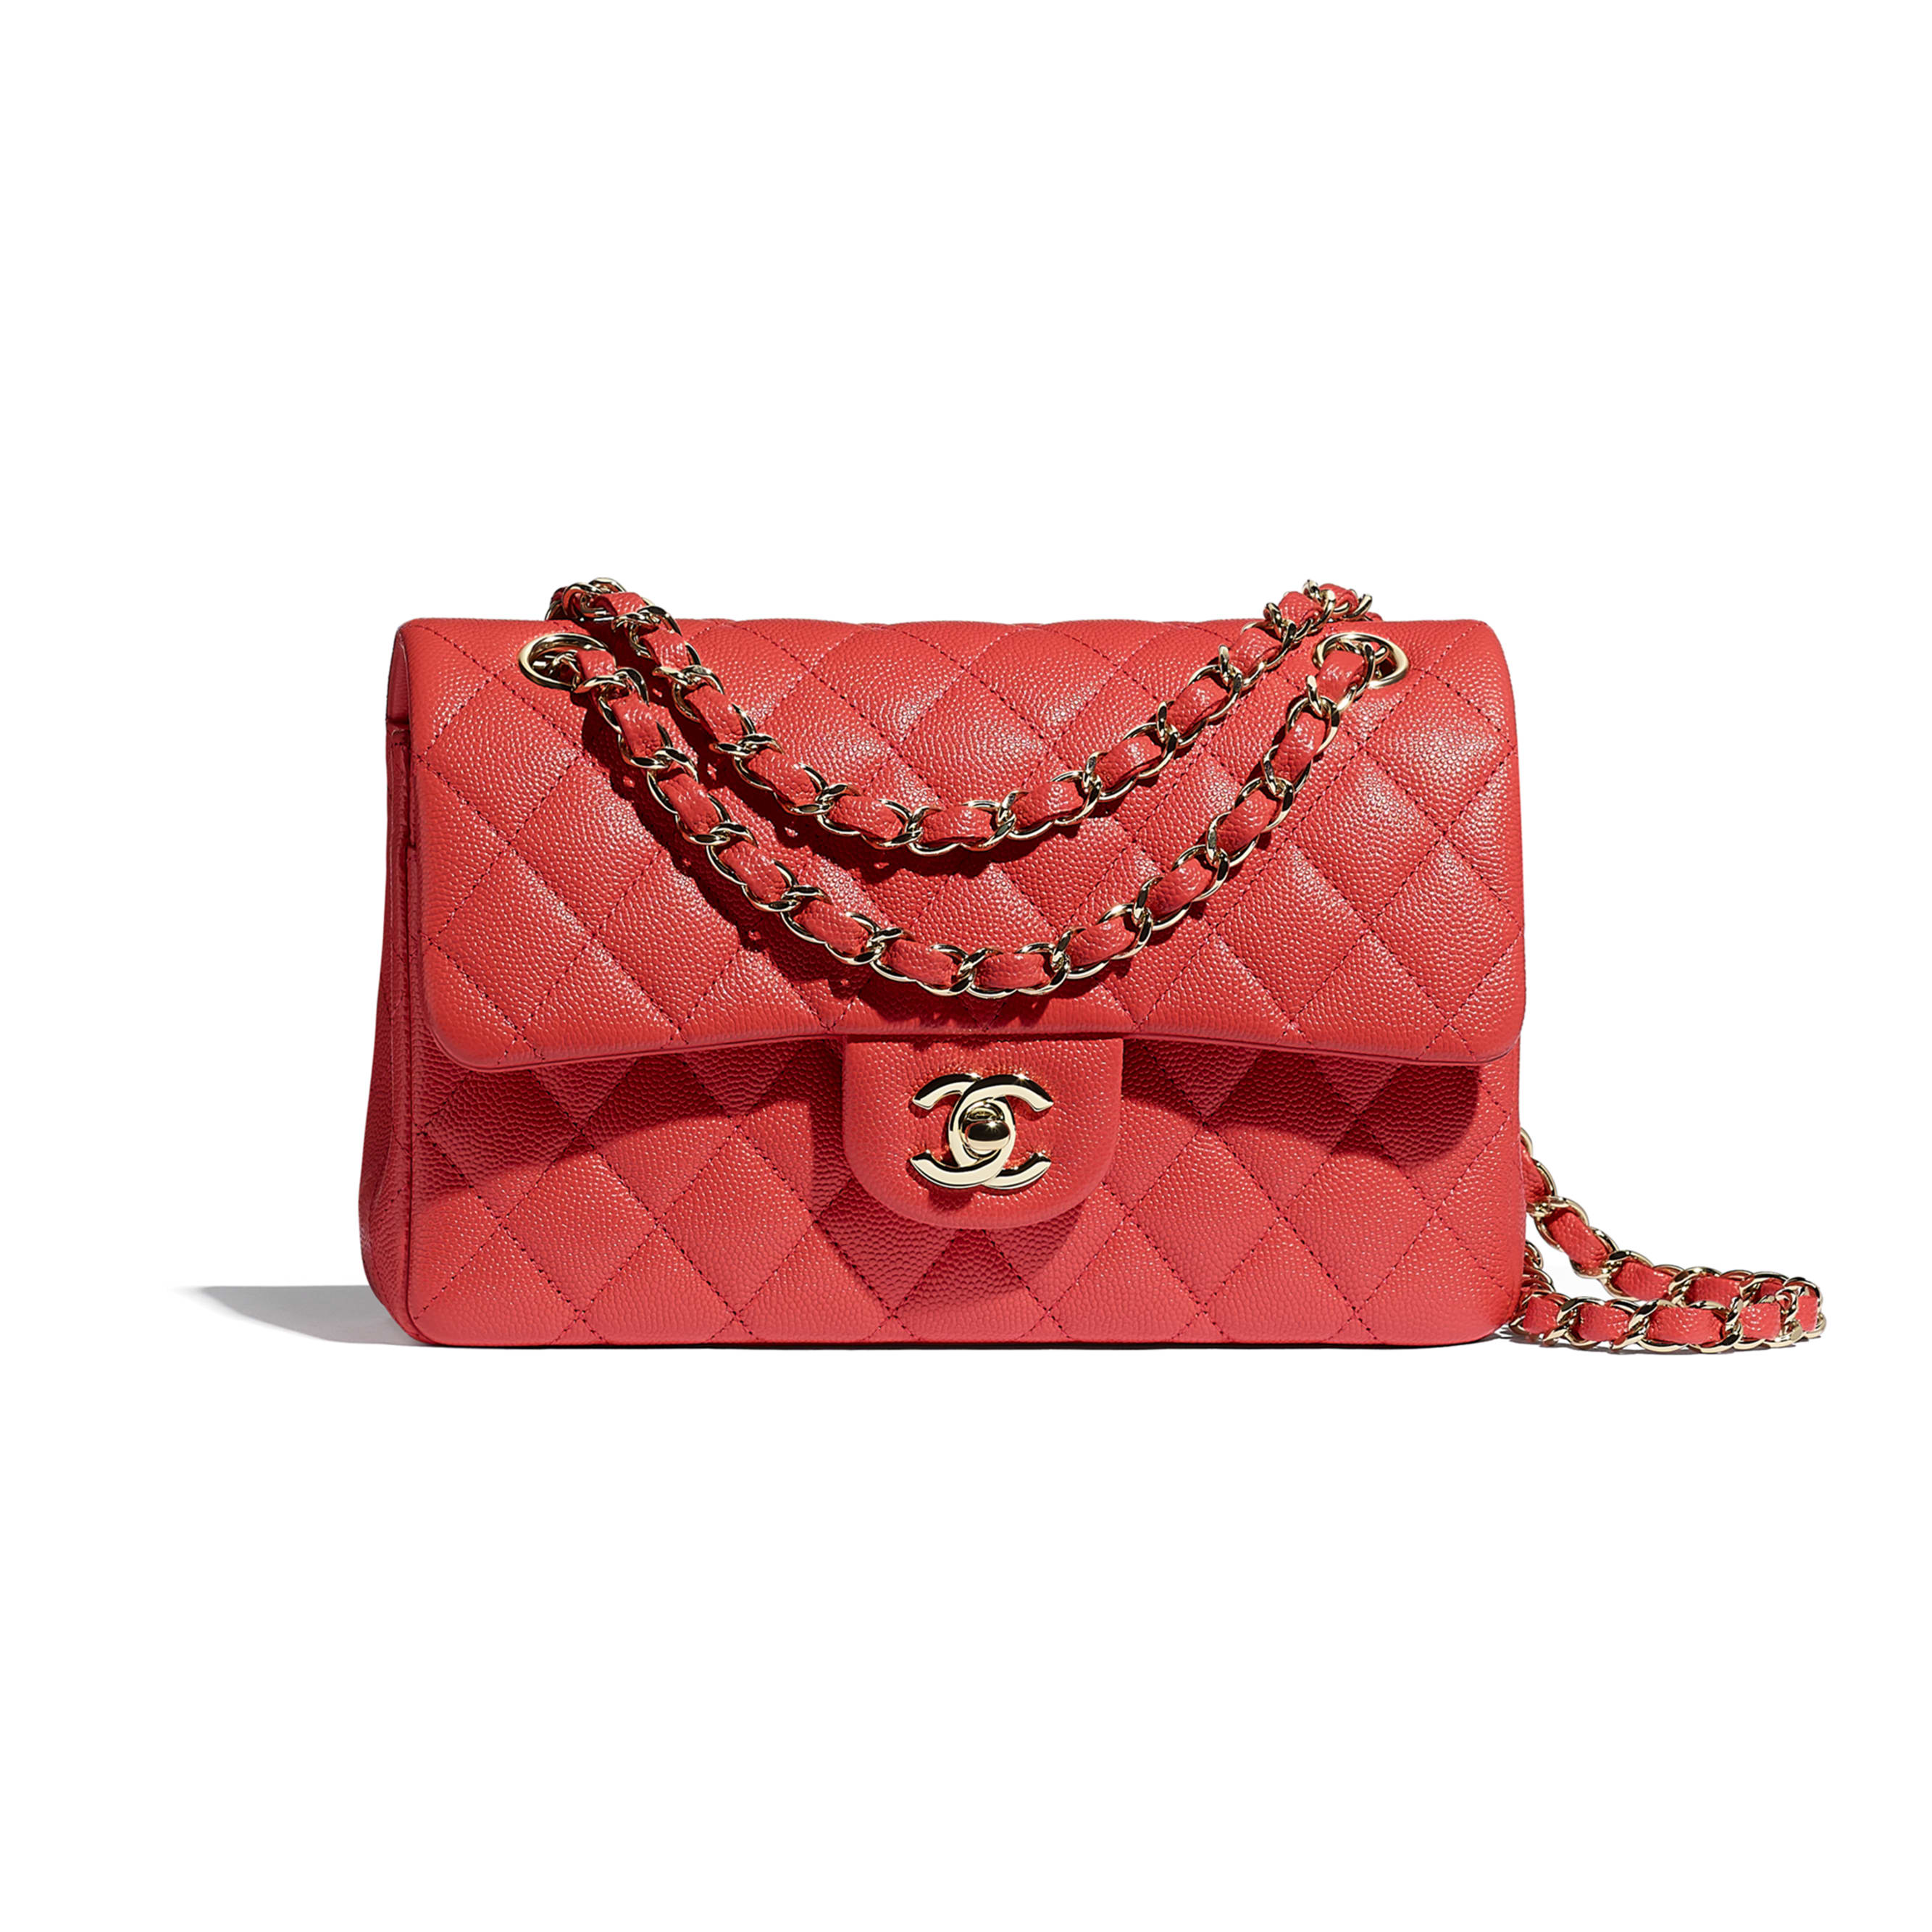 Classic Handbag - Red - Grained Calfskin & Gold-Tone Metal - CHANEL - Default view - see standard sized version